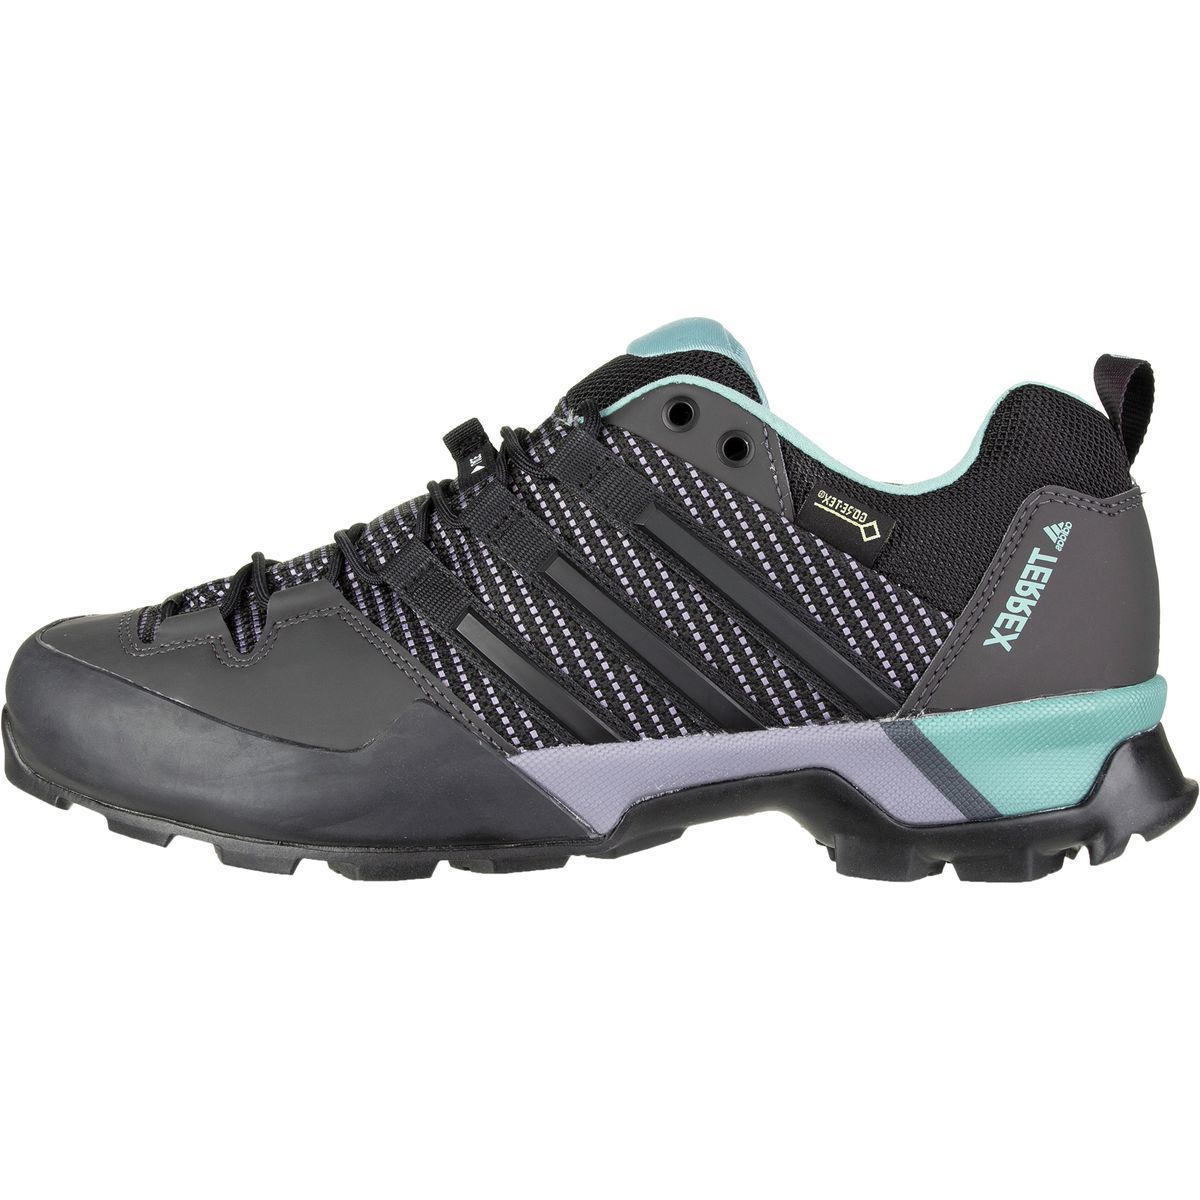 Adidas Outdoor Terrex Scope GTX Approach Shoe - Women's